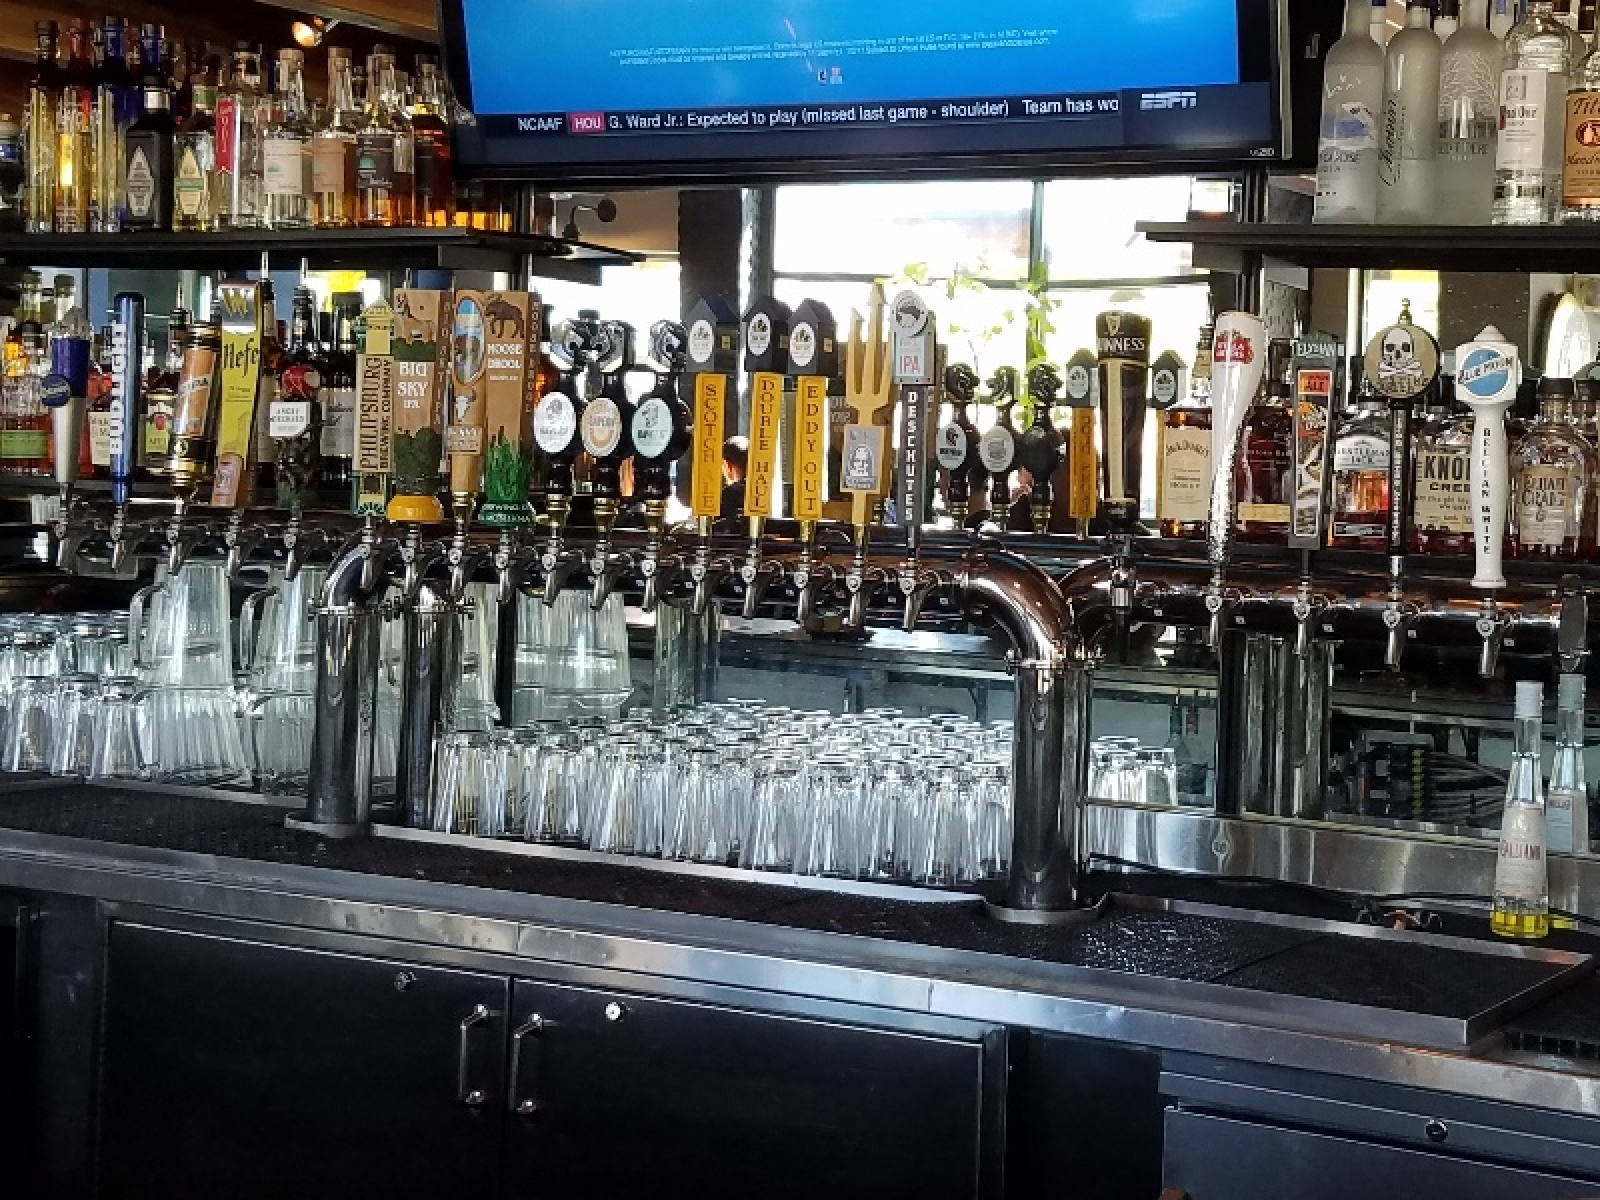 Taps on the bar